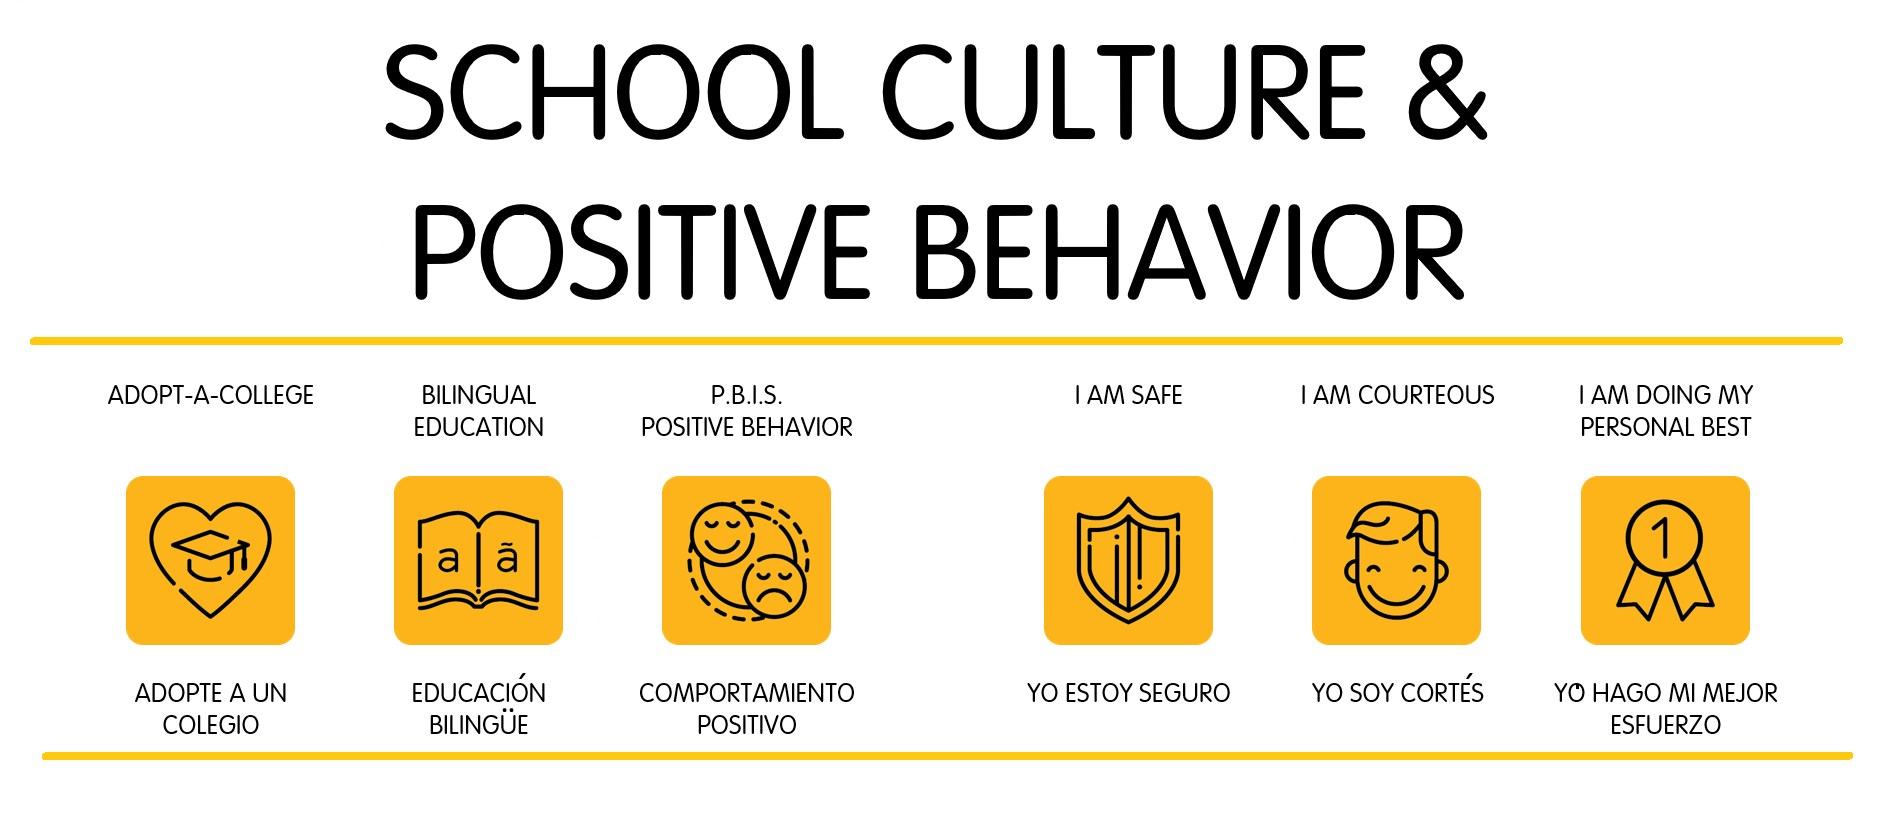 School Culture Positive Behavior